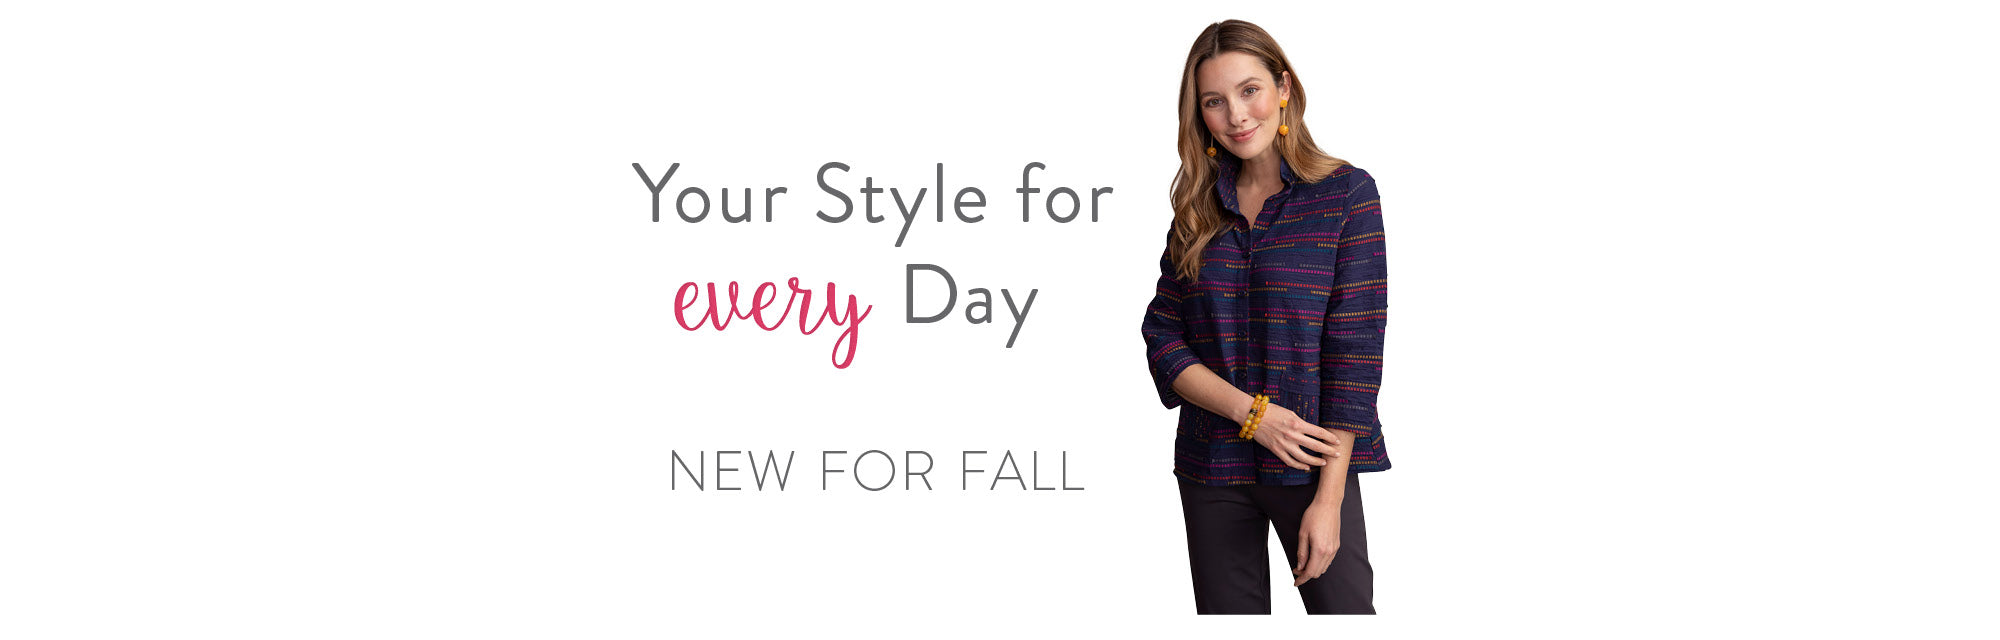 New for Fall, Habitat Clothes